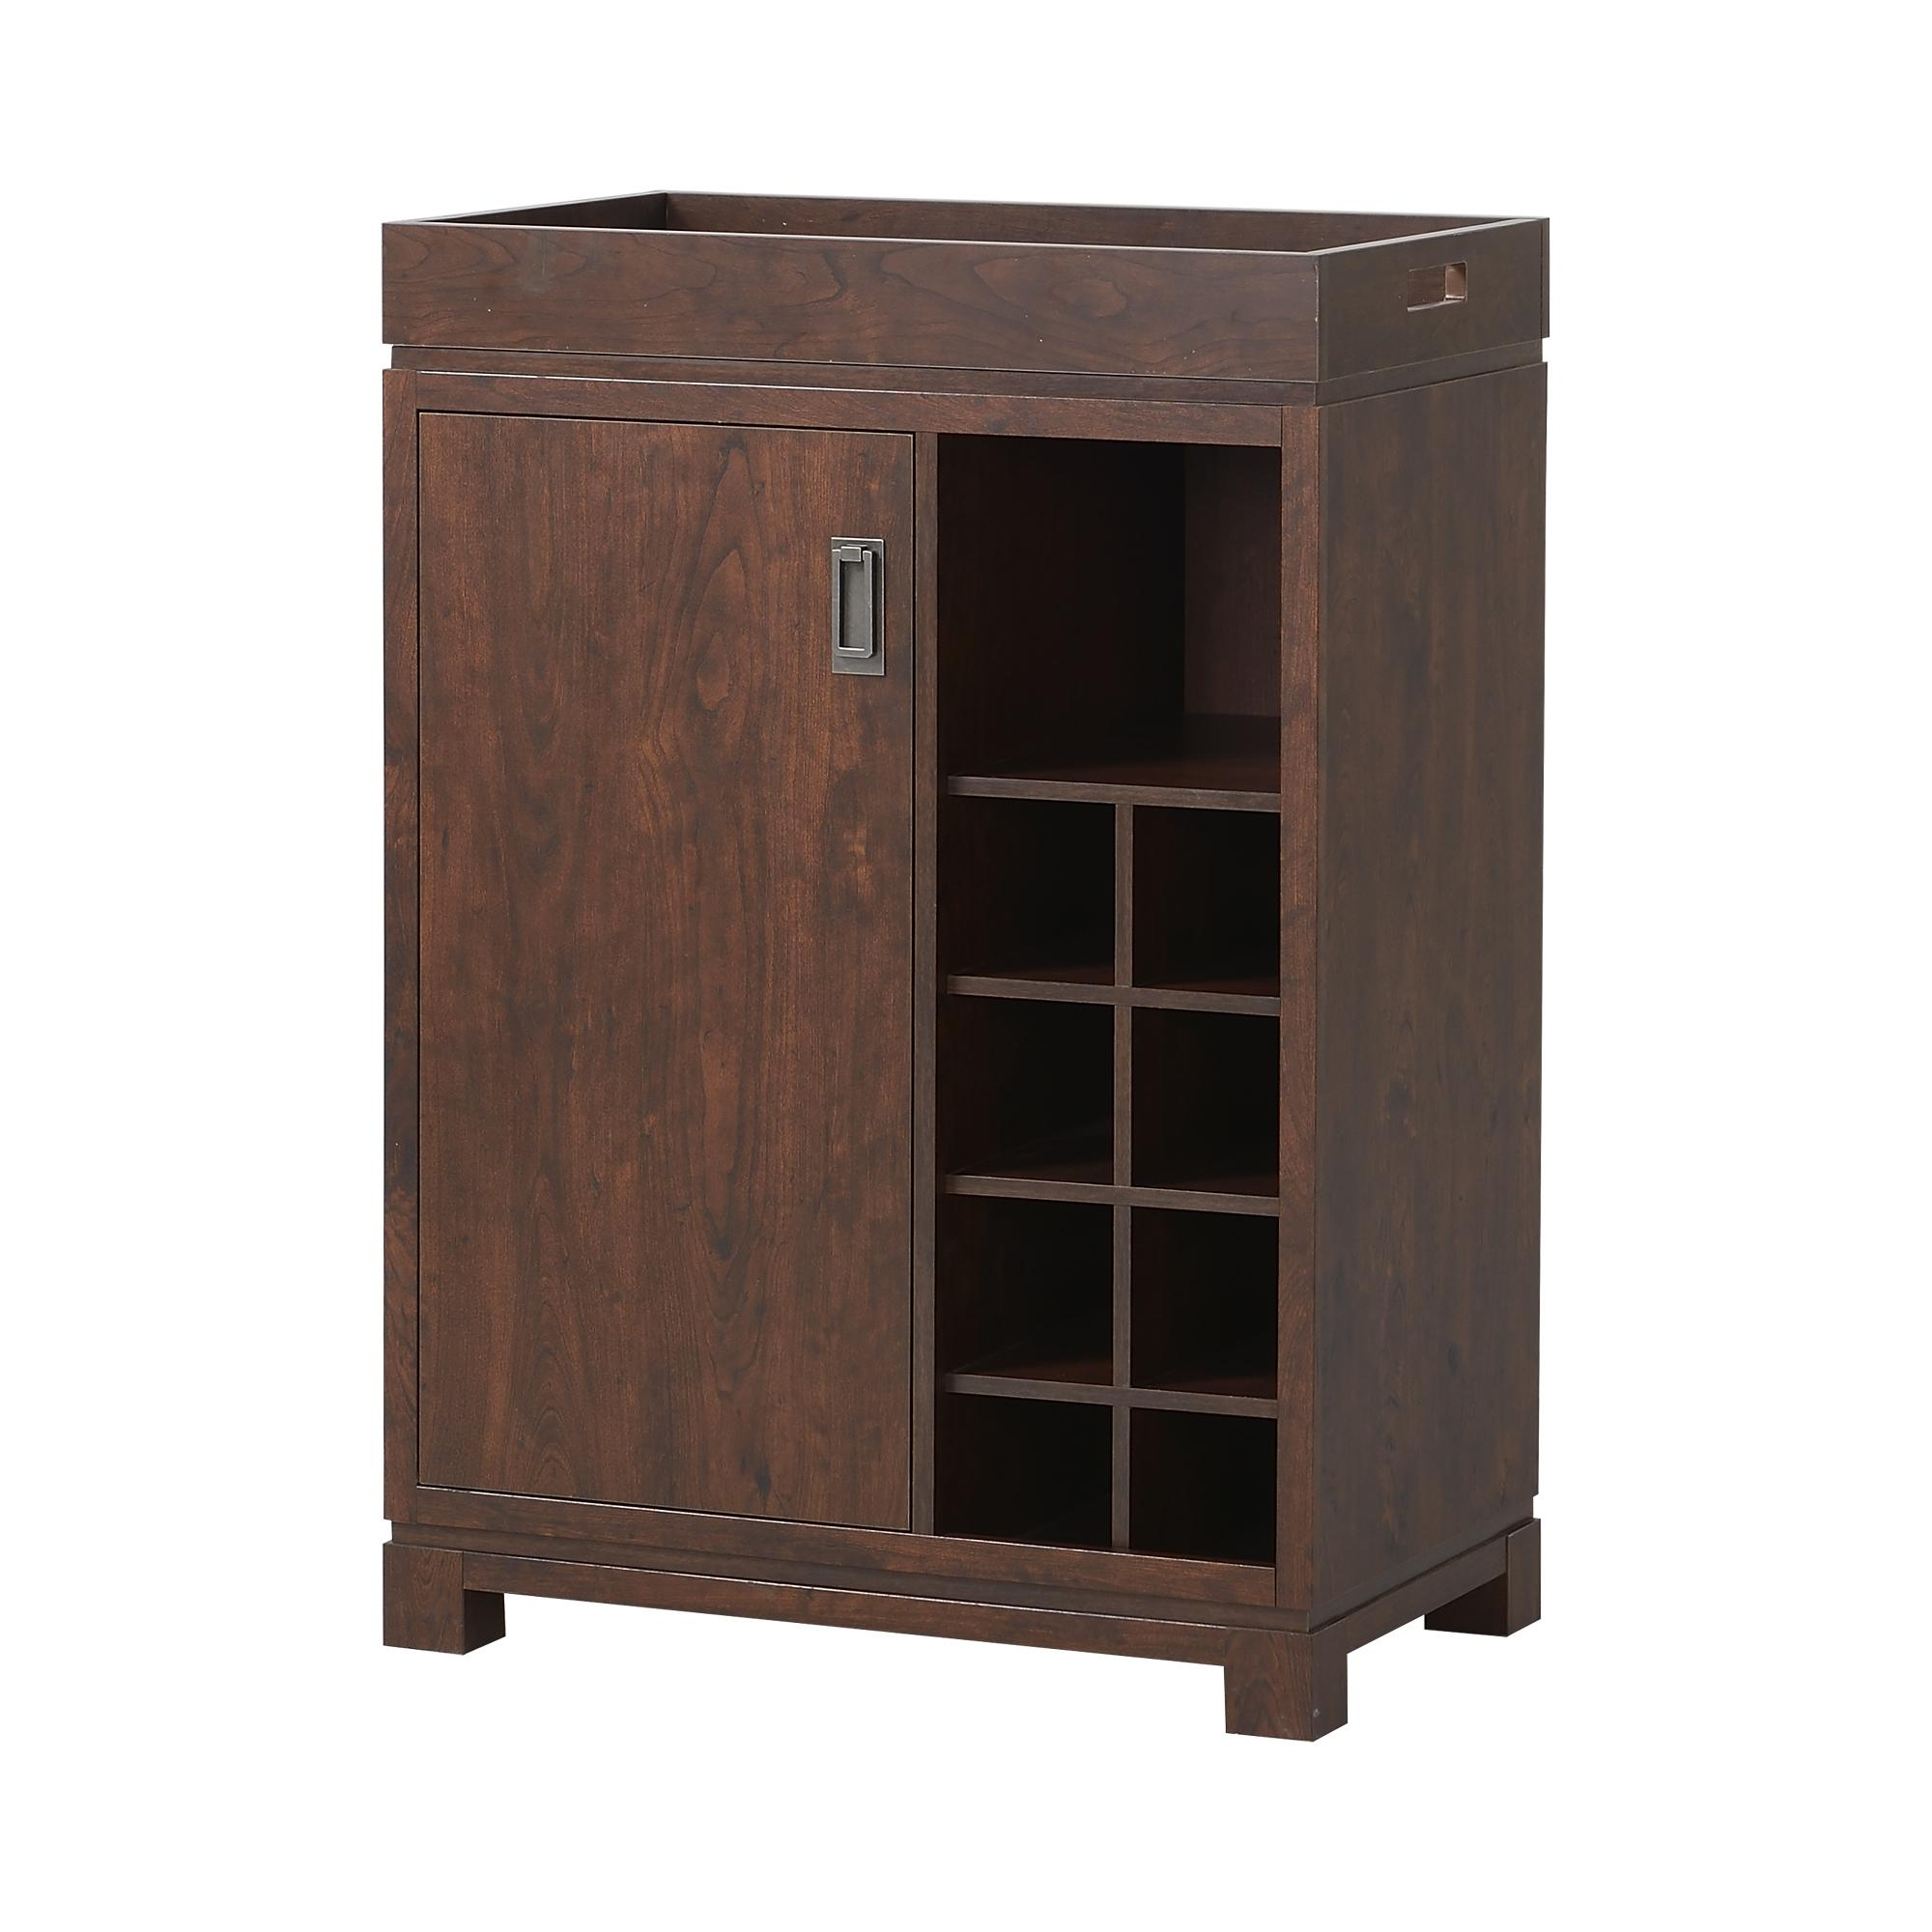 Wine Cabinet With Removable Tray in Brown - [ZH141191]